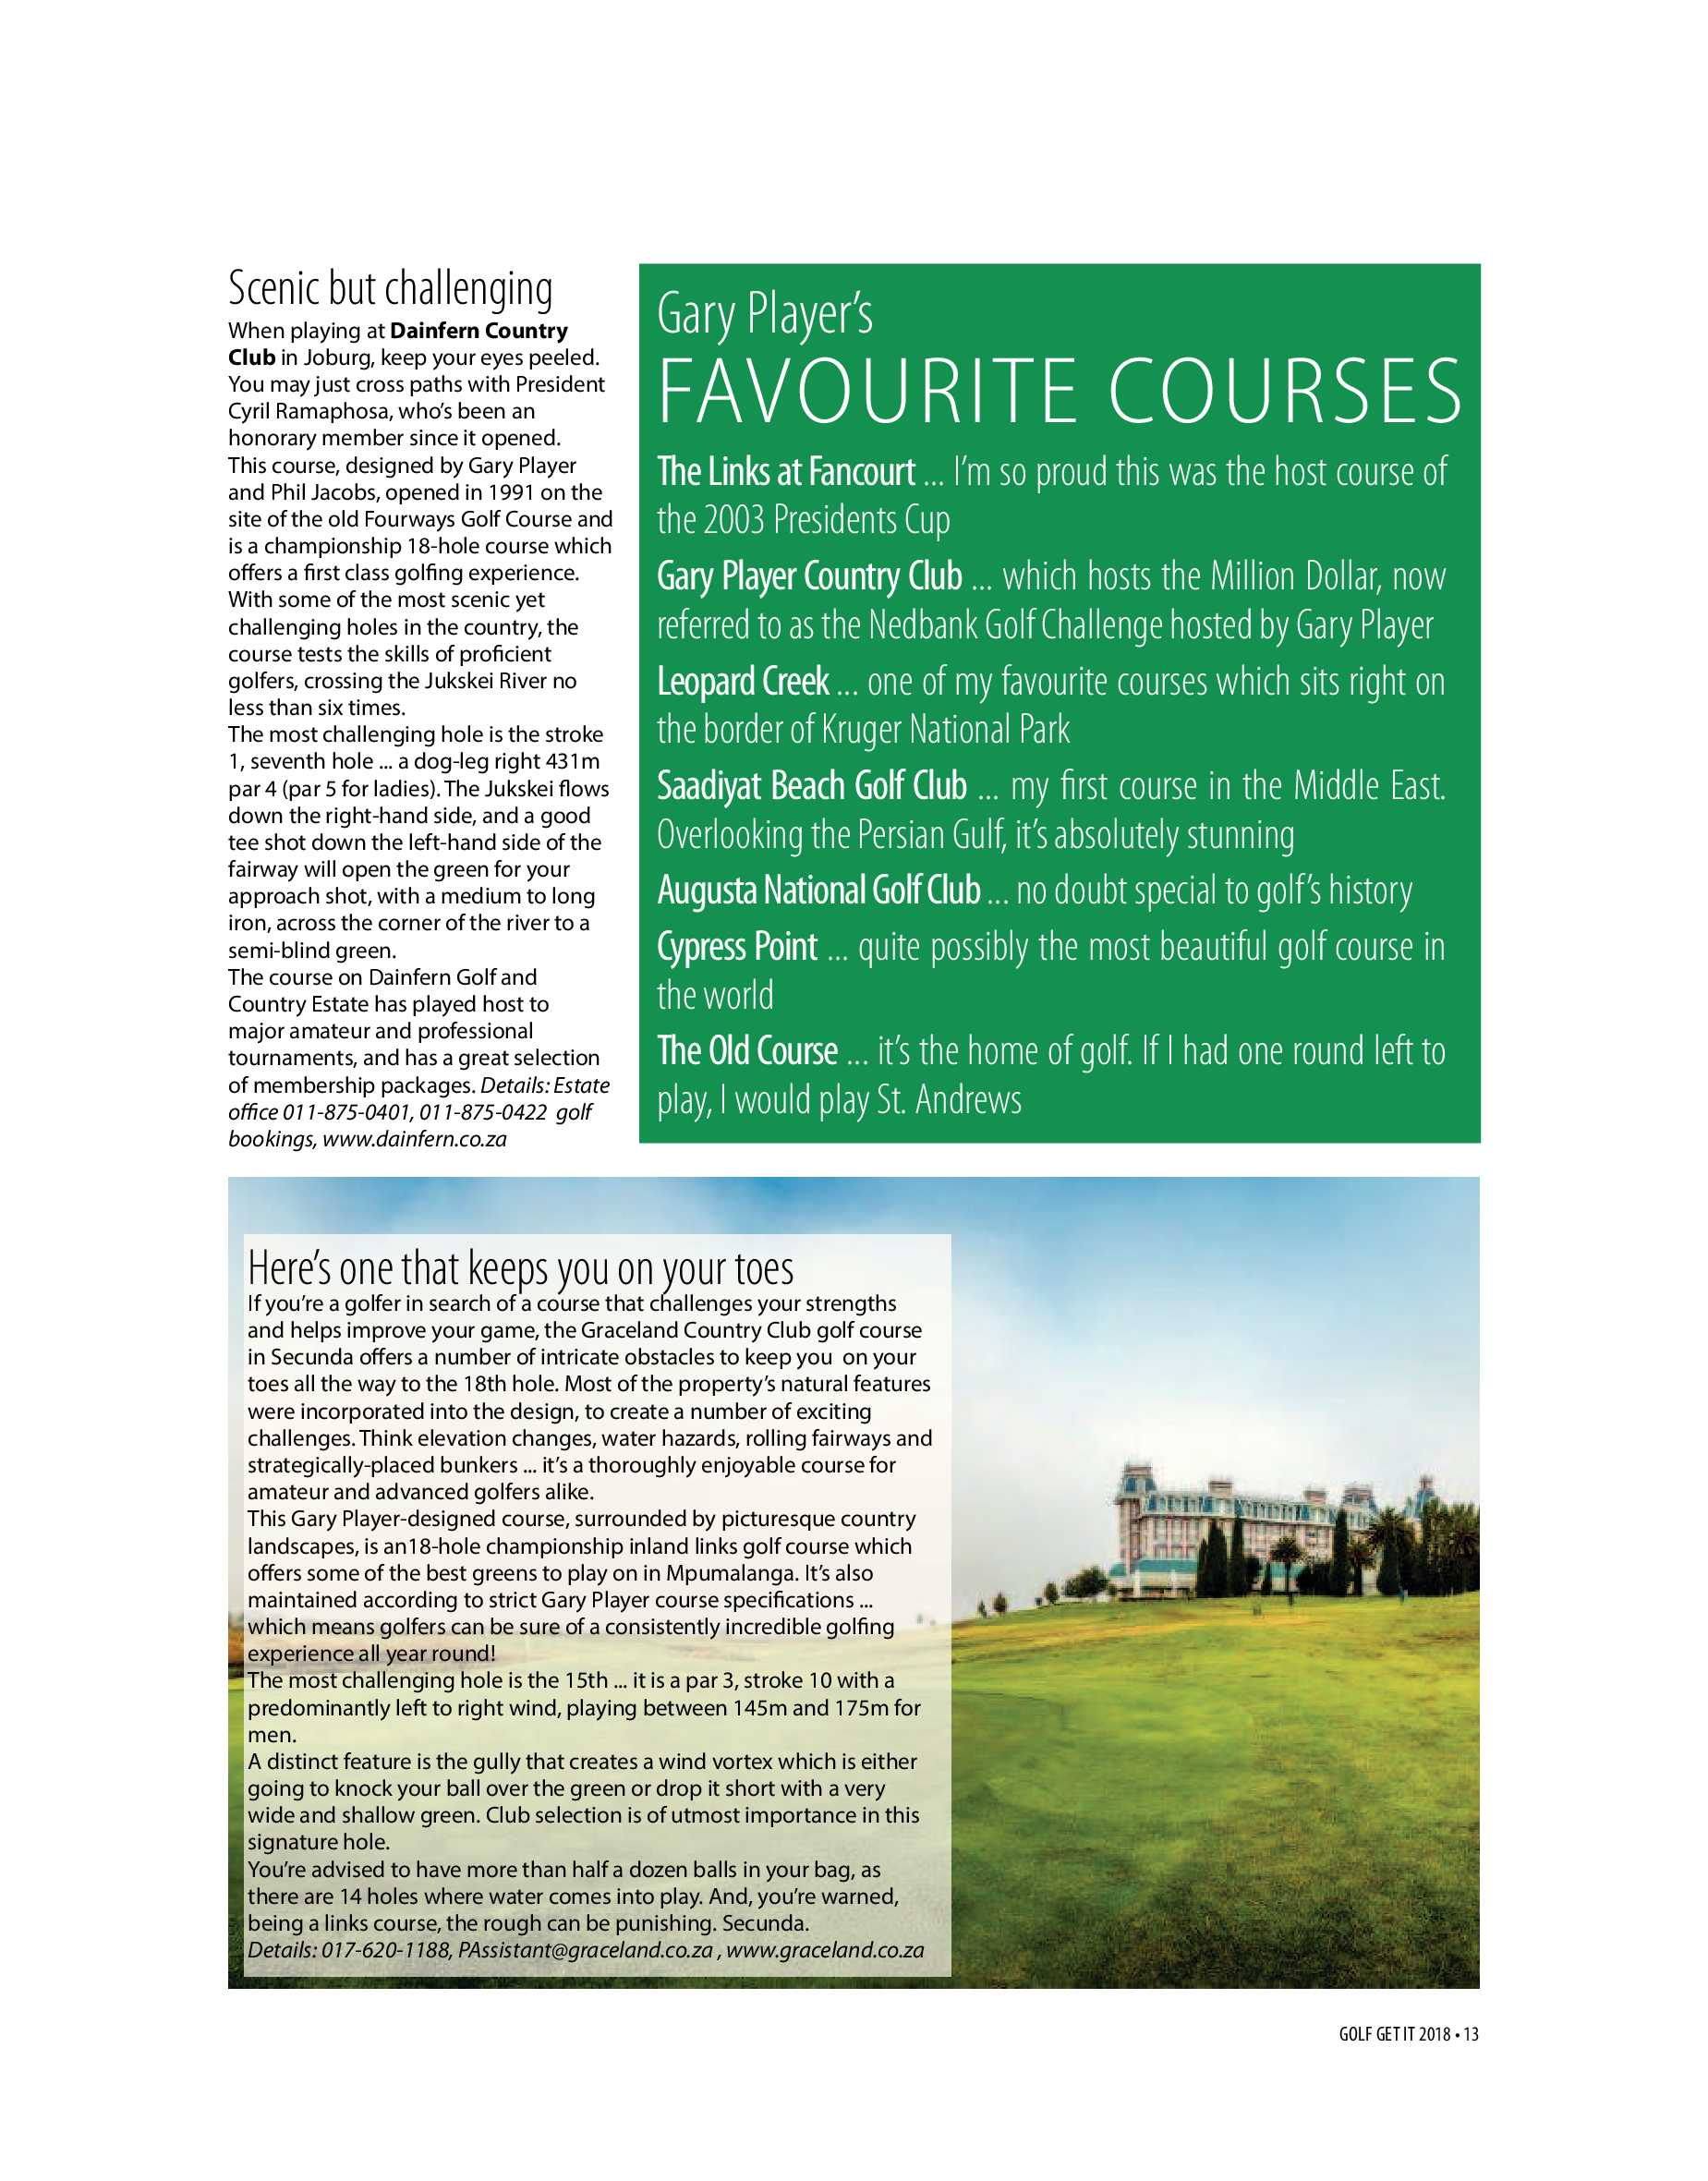 get-it-golf-epapers-page-13